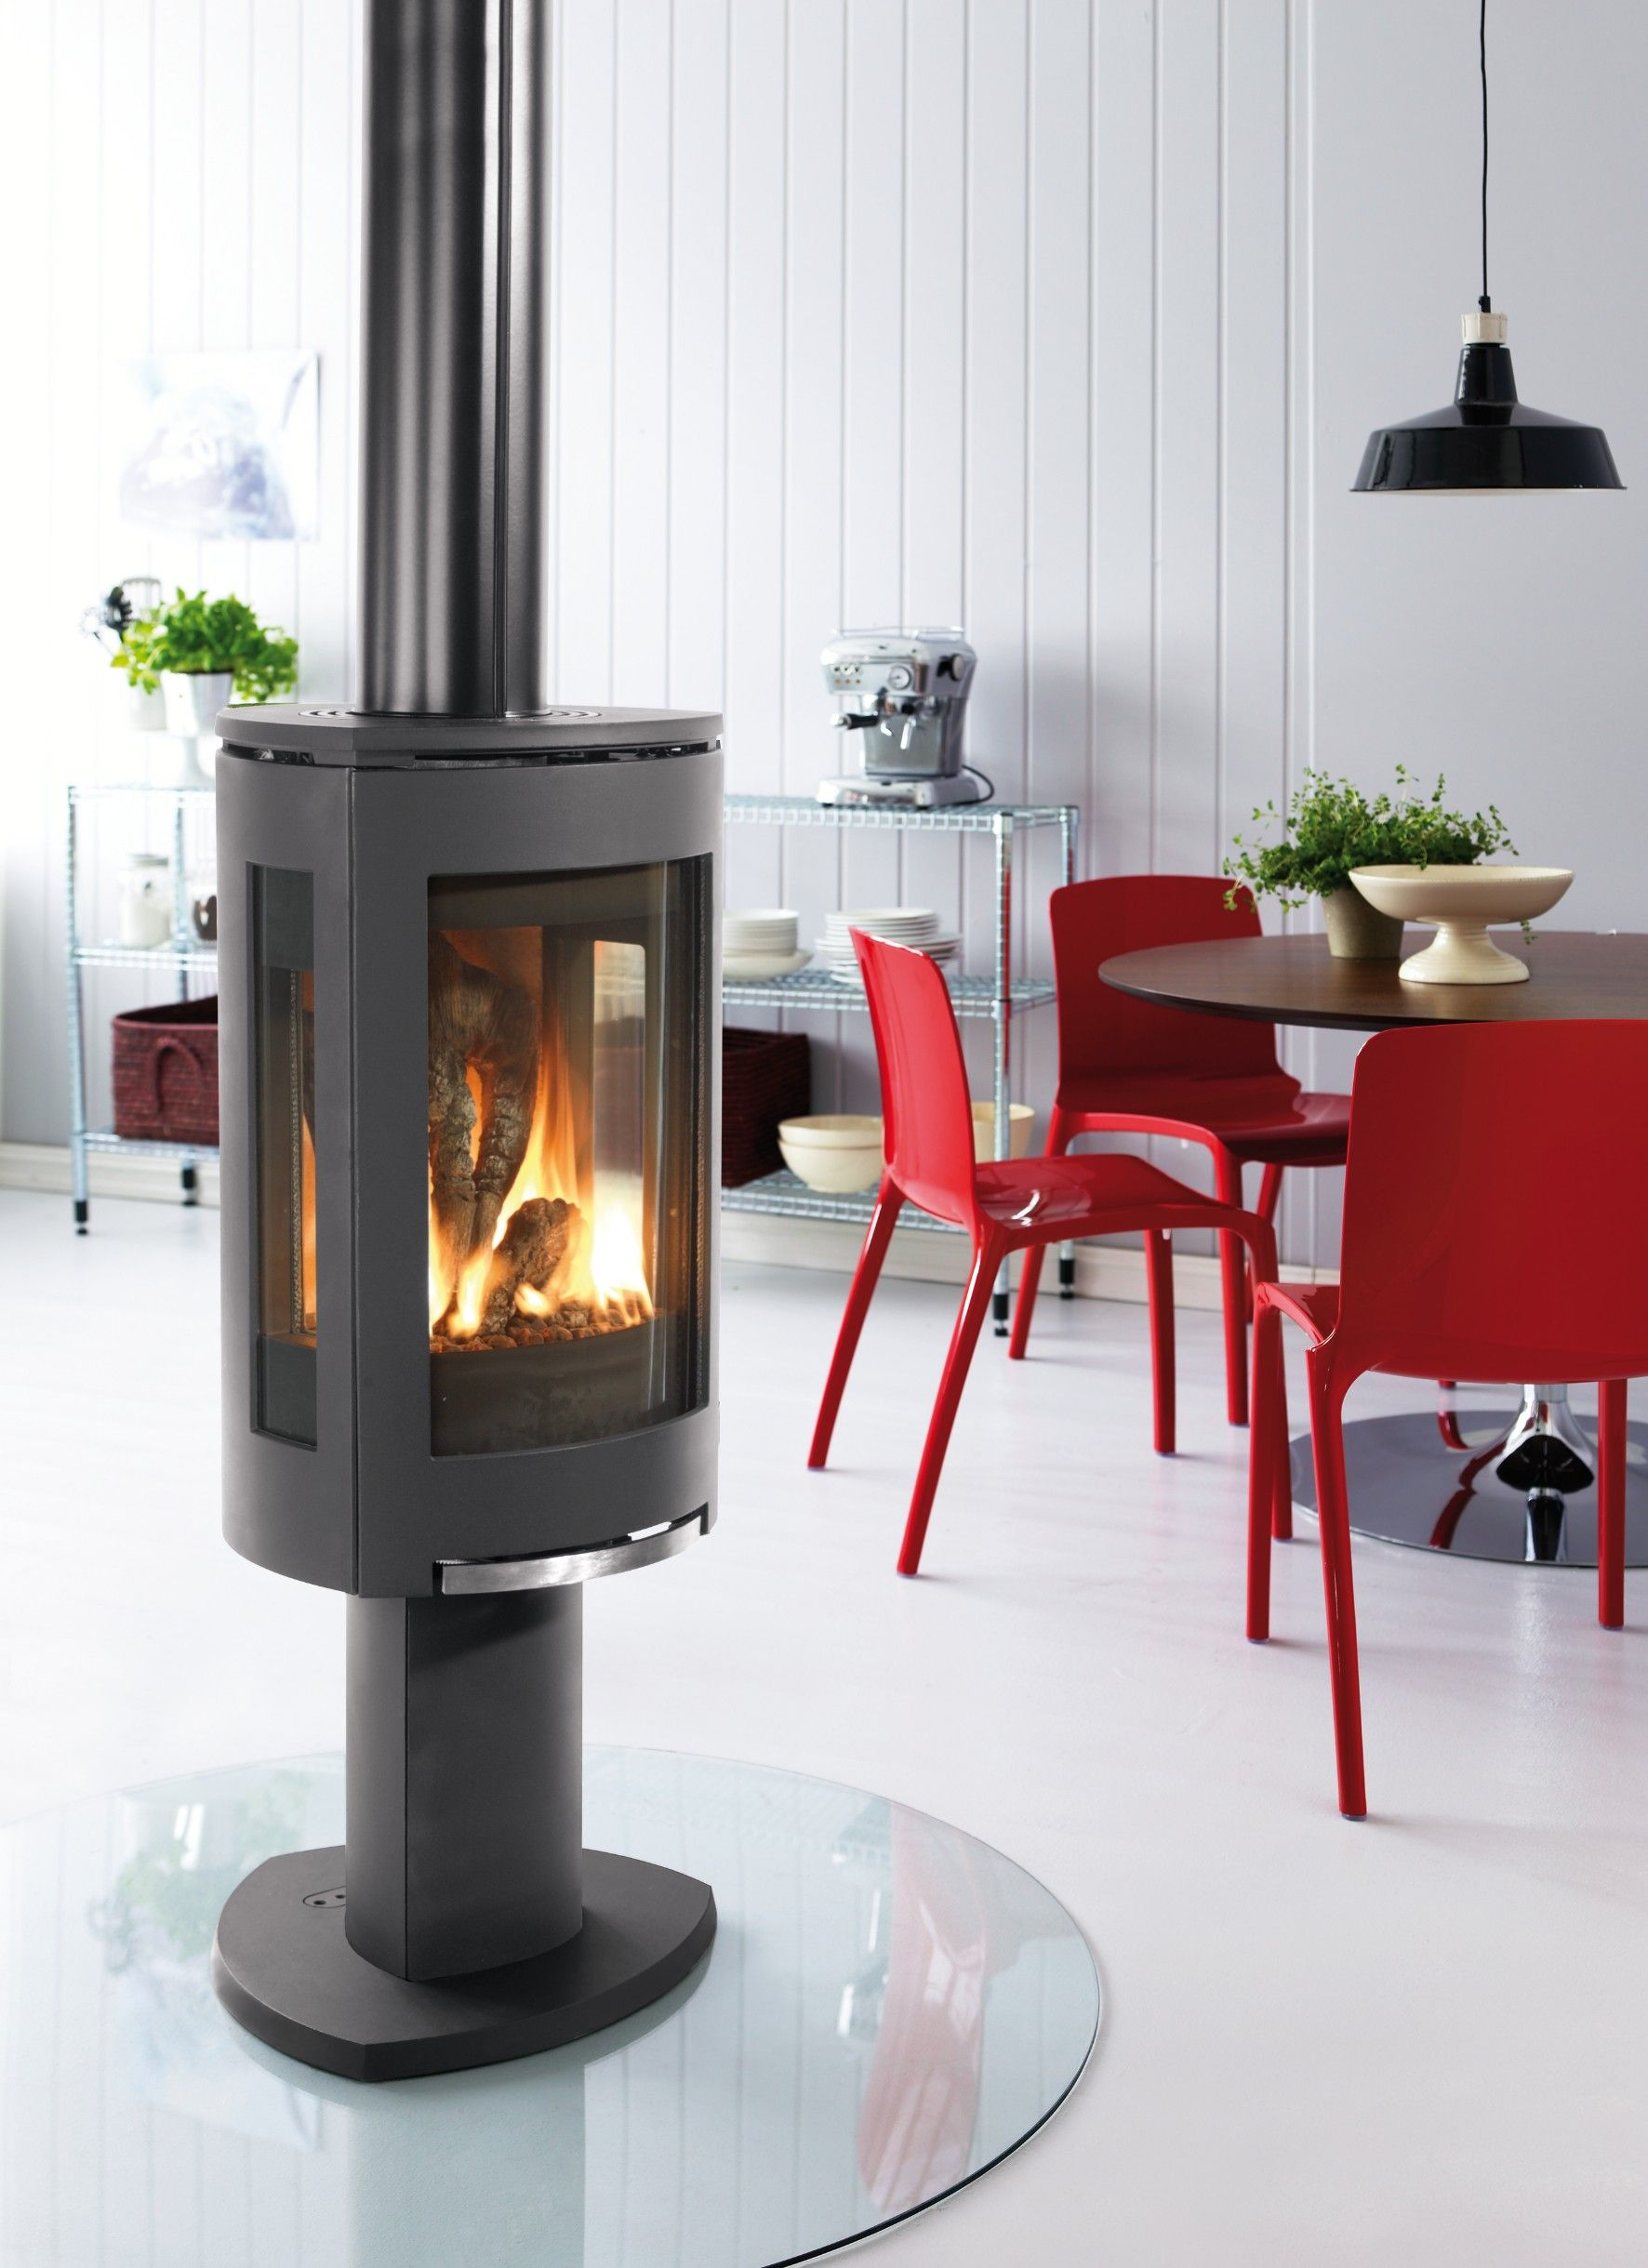 Jotul Gf 370 Dv Gas Stove Gas Fireplaces Fireplaces Modern